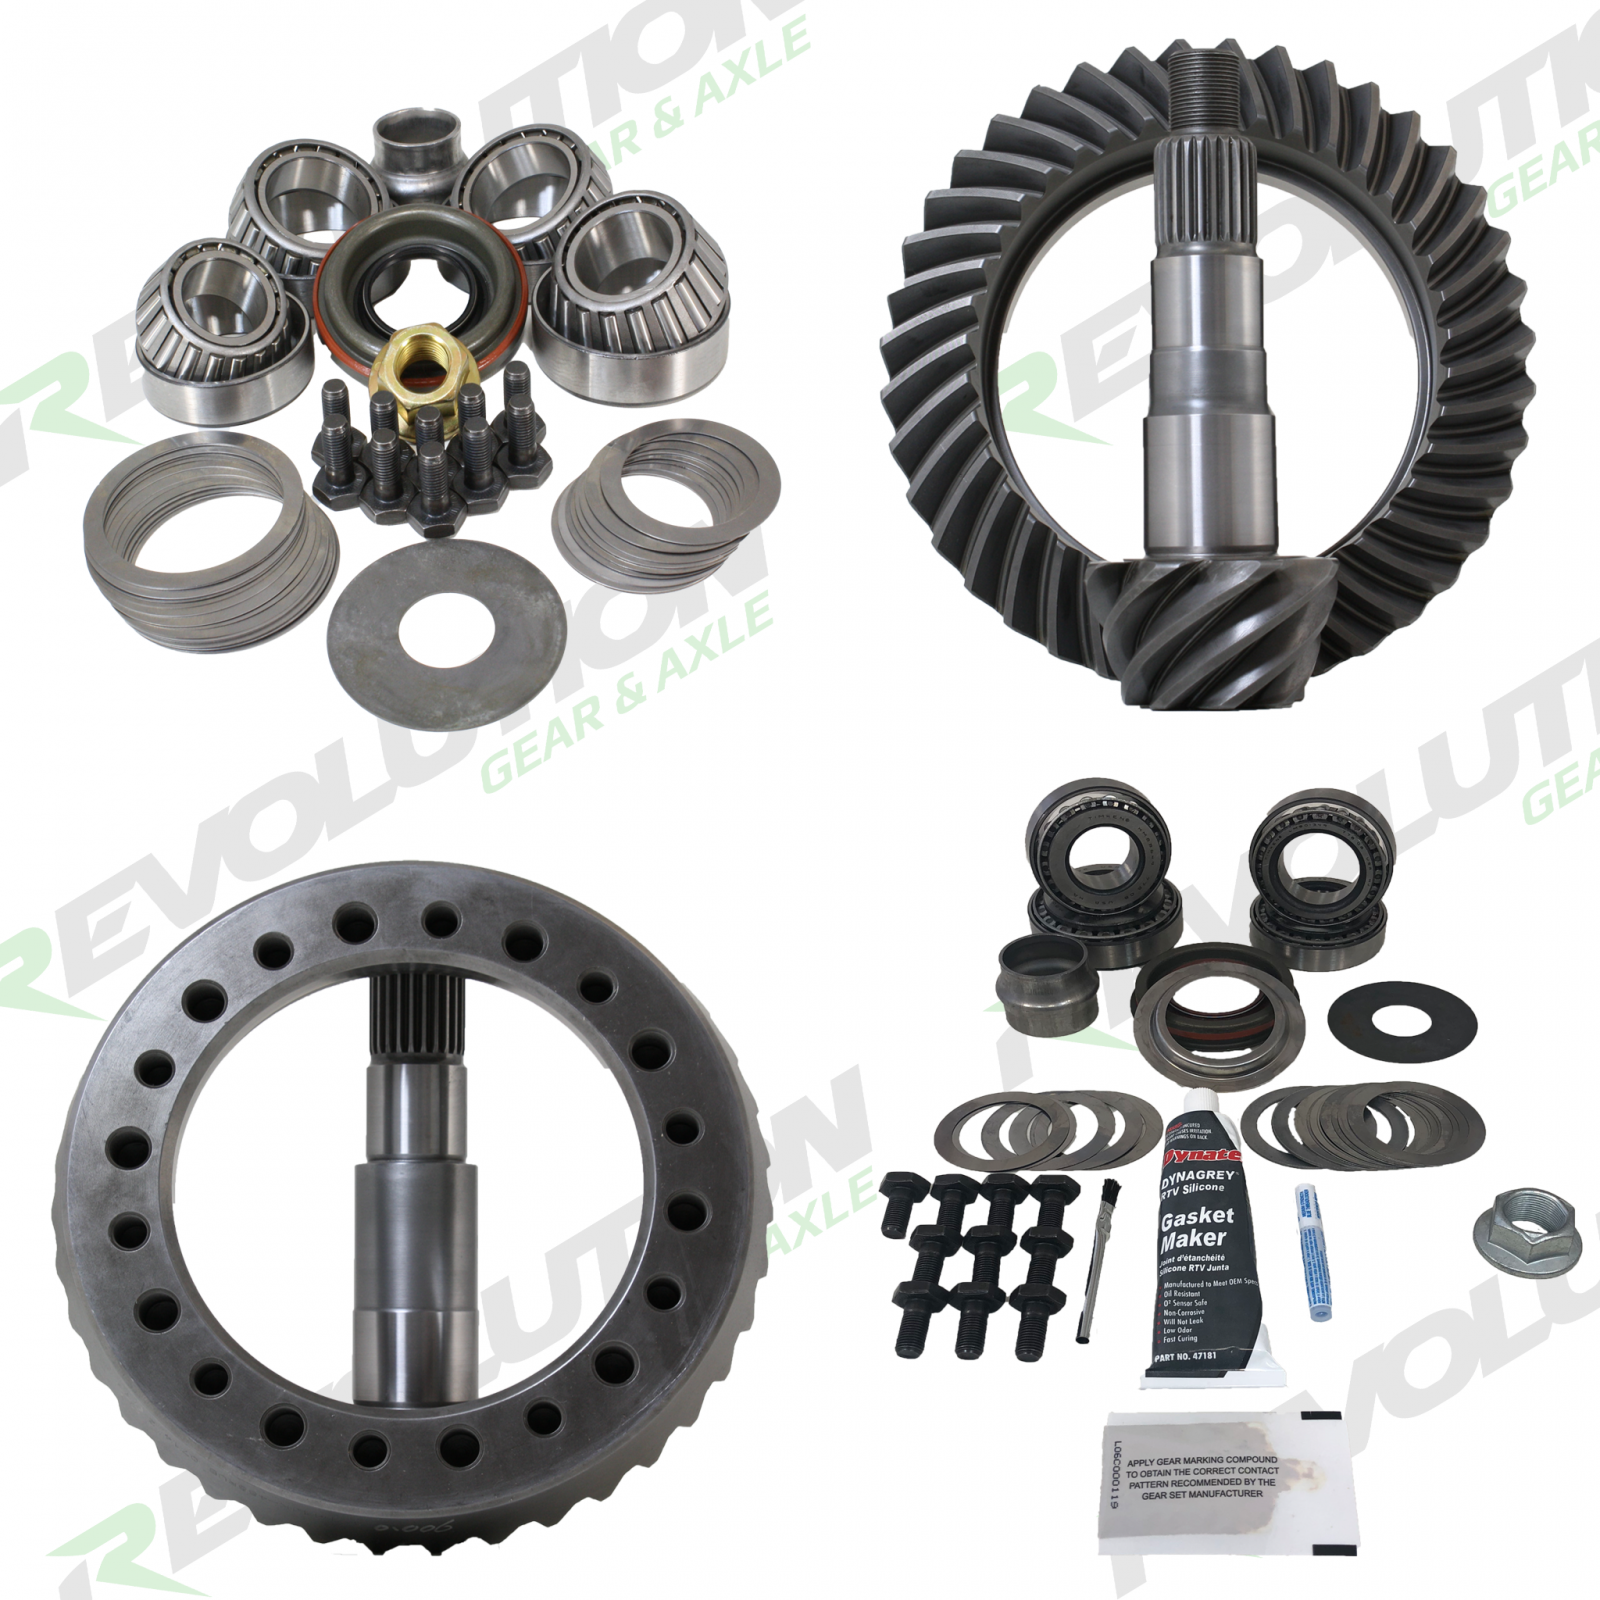 Nissan 5.89 Ratio Gear Package 1987-97 Patrol GU/GQ and 1997-17 Y60/Y61 (H233B-H233B Reverse) Revolution Gear and Axle and Axle - HQ Offroad